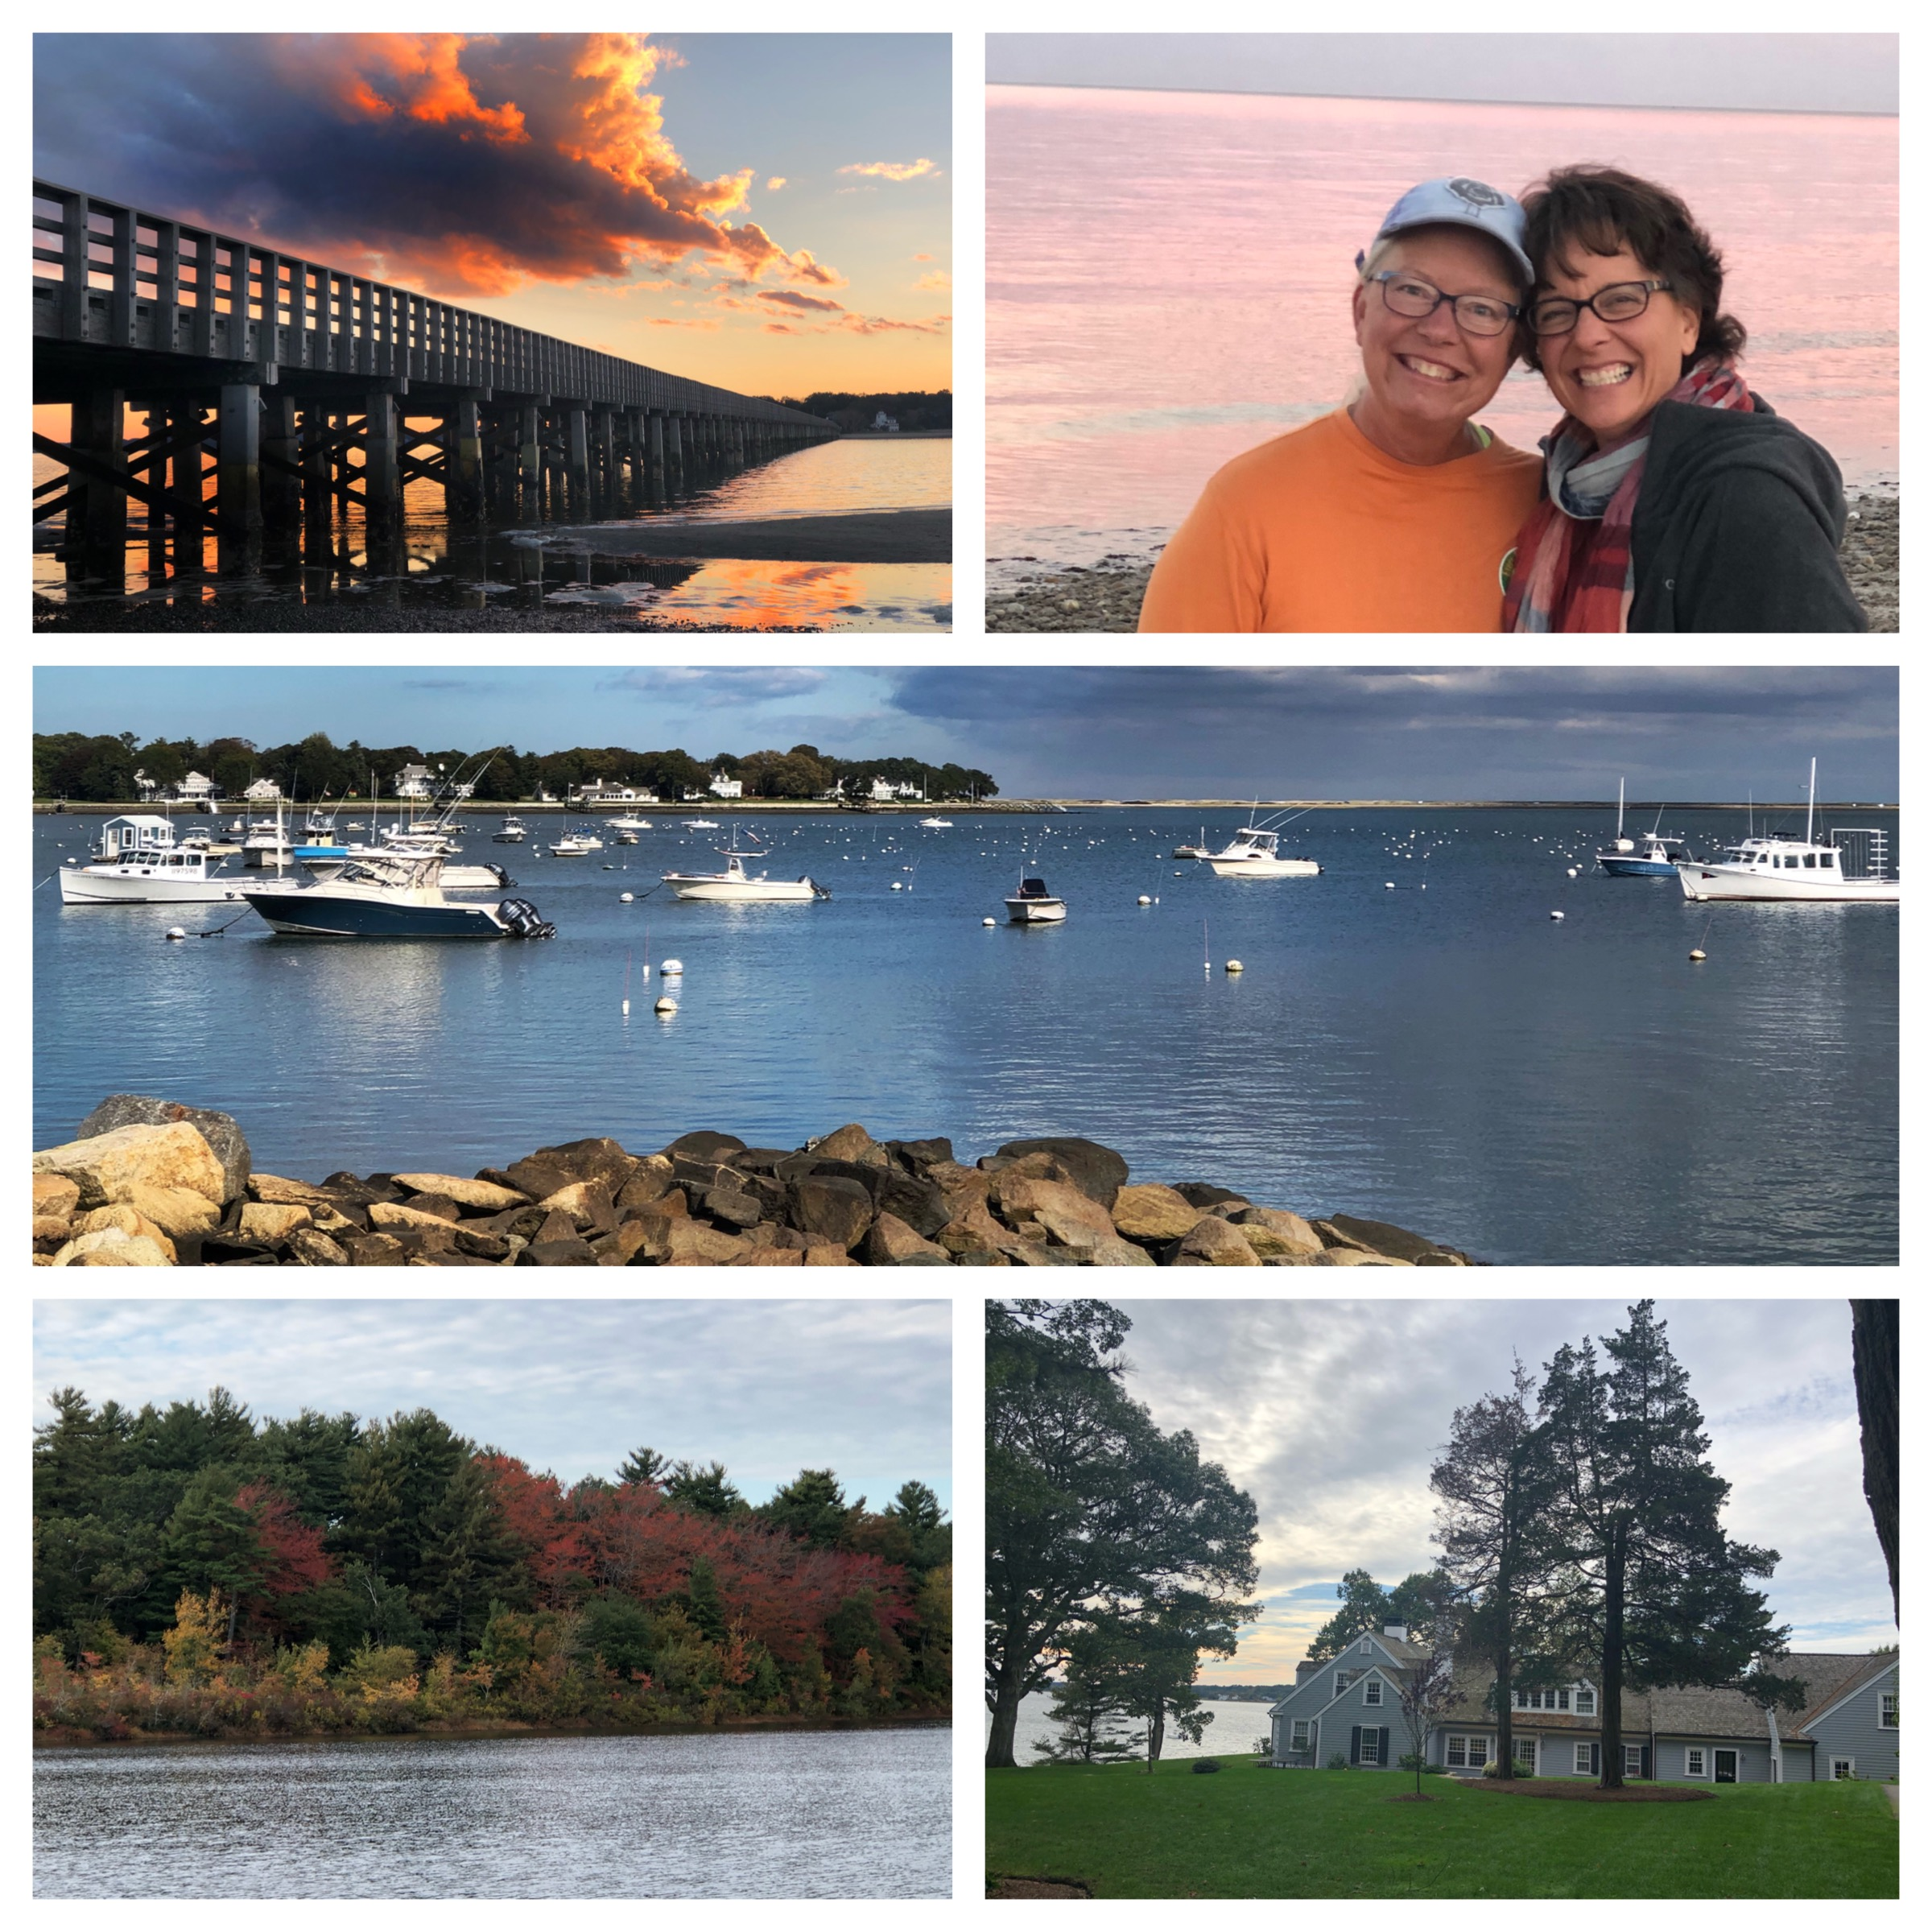 Duxbury Bay, and Big Beach. Looking out to the bay from the house where Aunt Sue and Dad grew up.